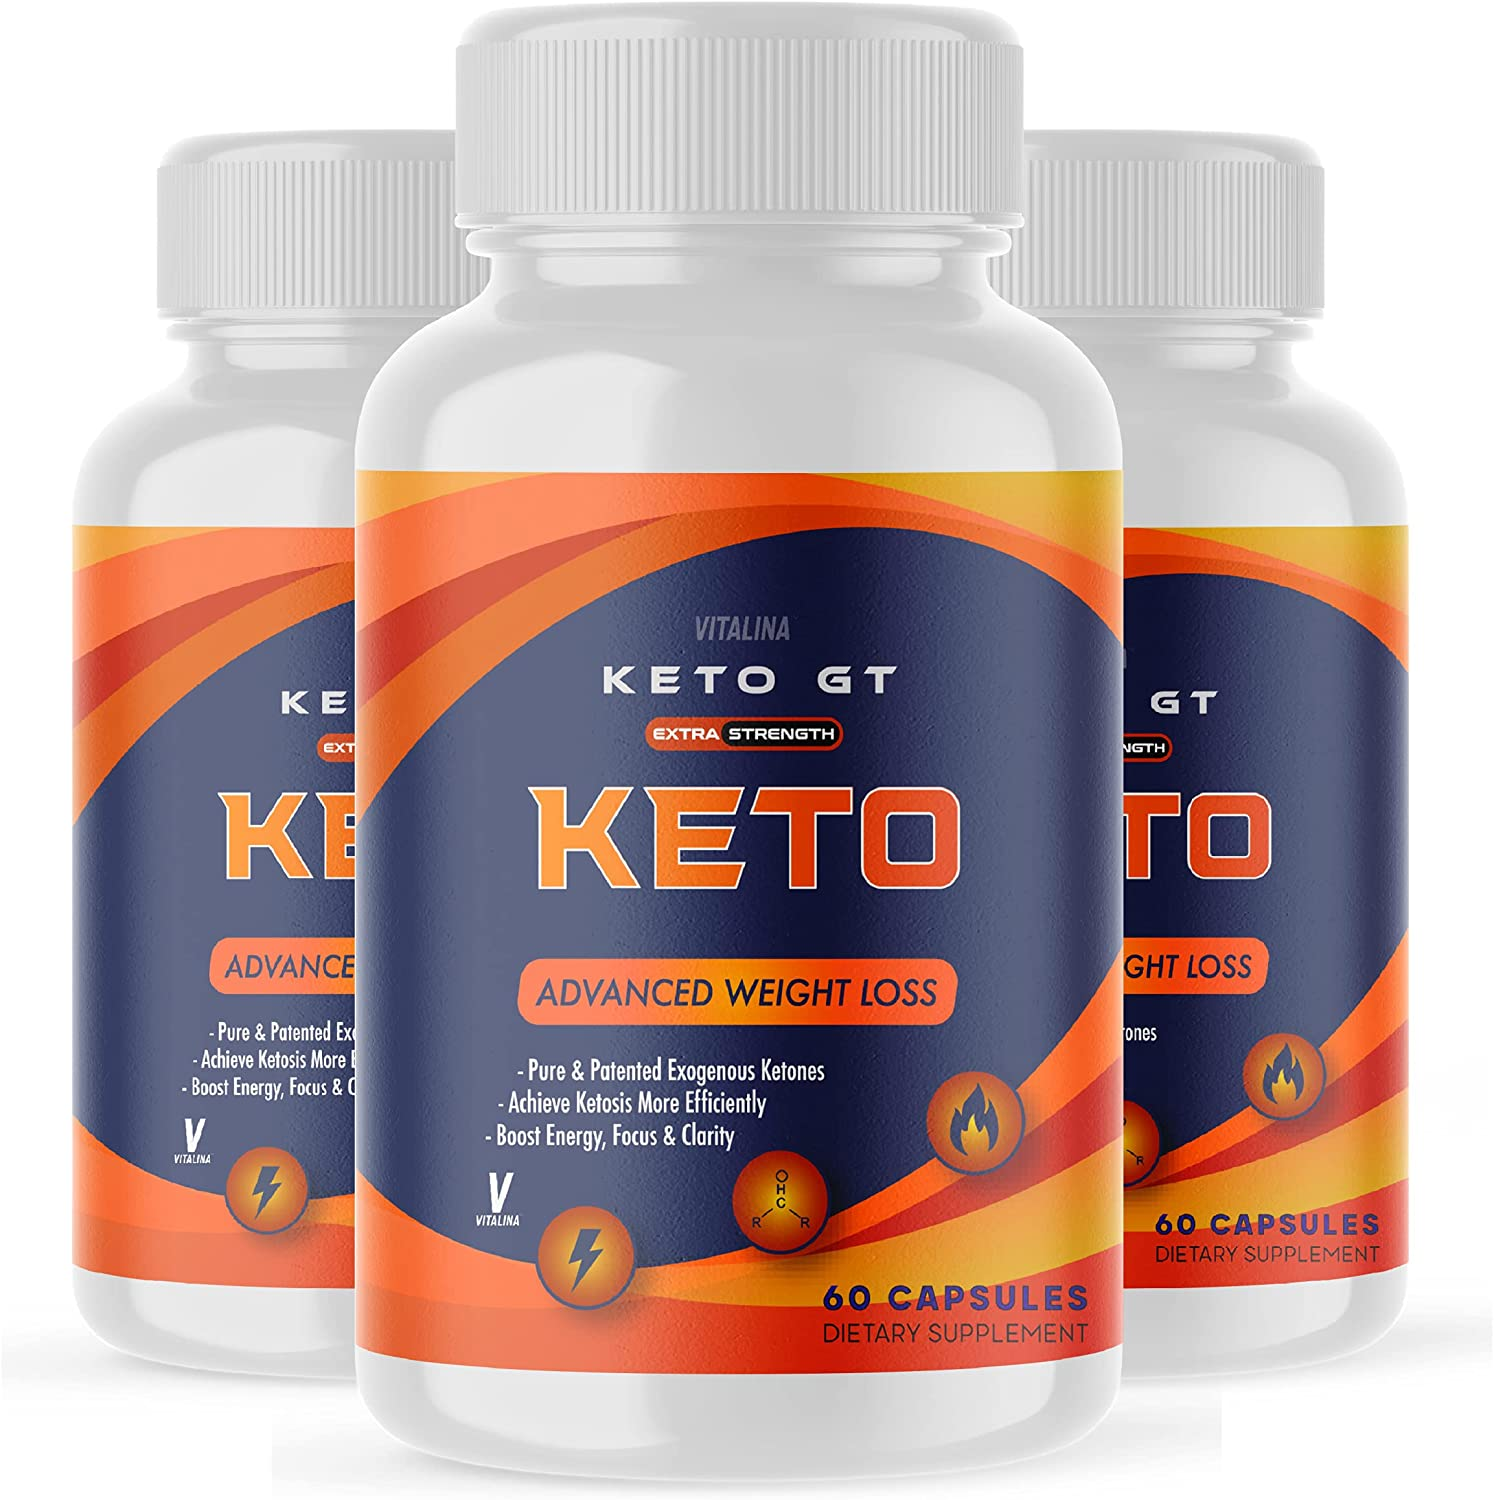 55% OFF Popularity 3 Pack Official Keto GT Max and Strength for Mon Women Men